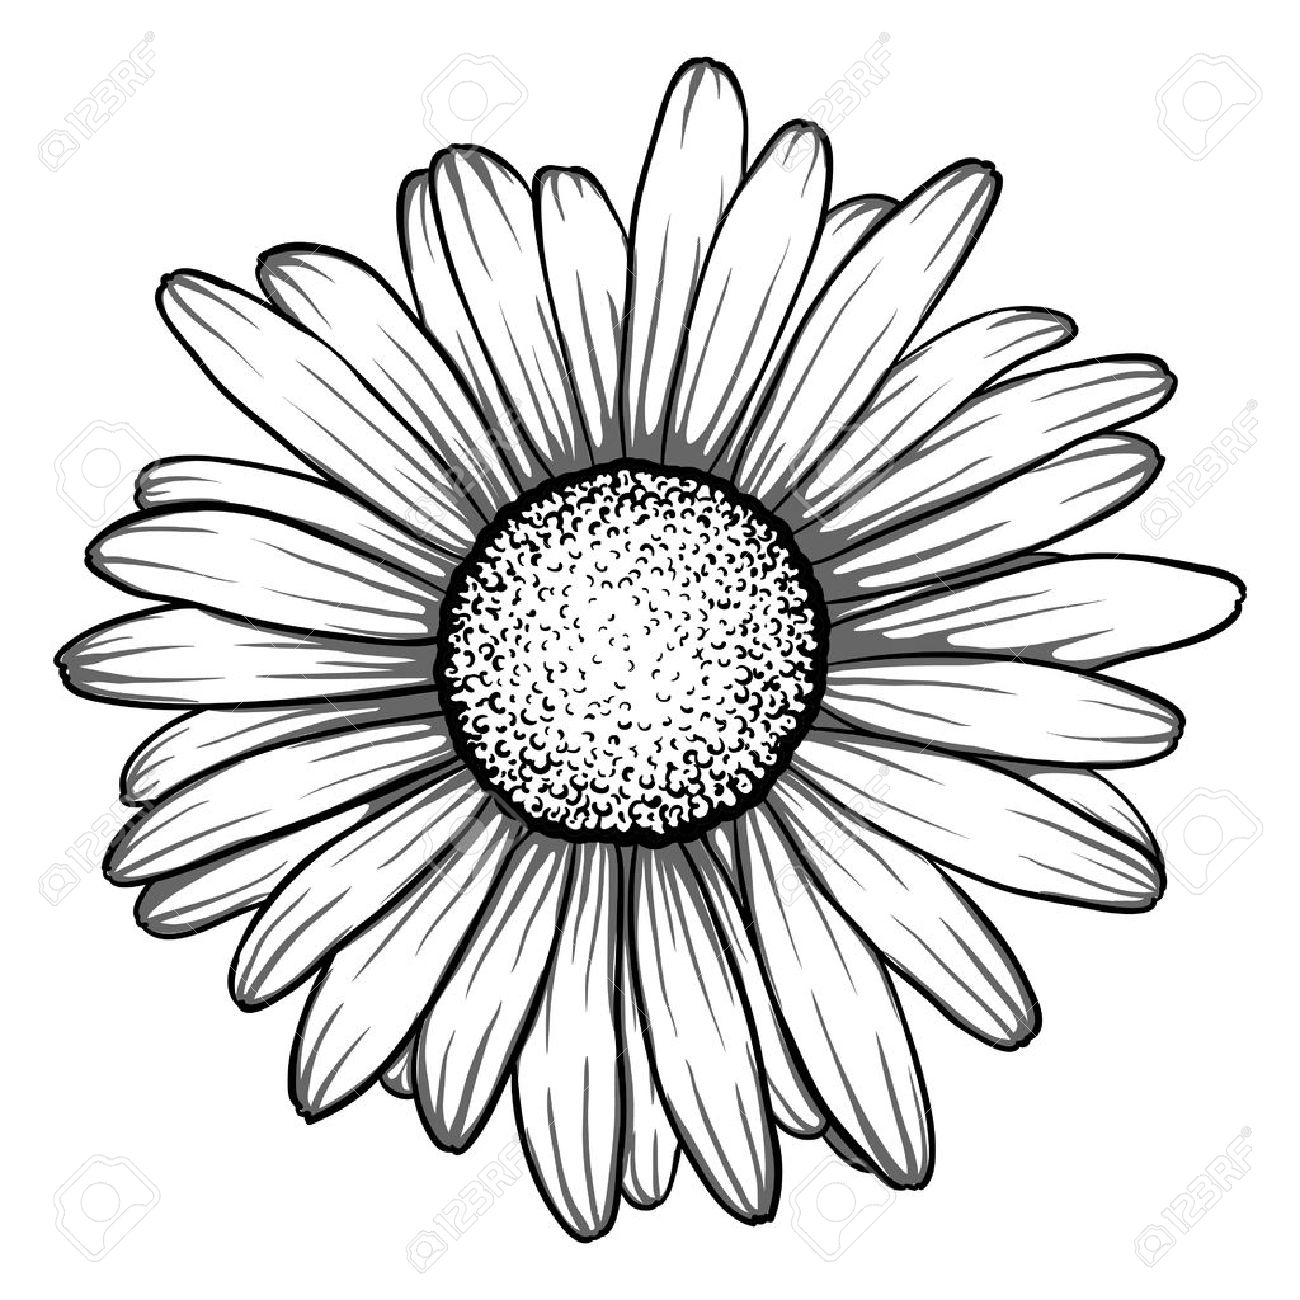 beautiful monochrome, black and white daisy flower isolated. for greeting cards and invitations of the wedding, birthday, Valentine's Day, mother's day and other seasonal holiday - 50874454